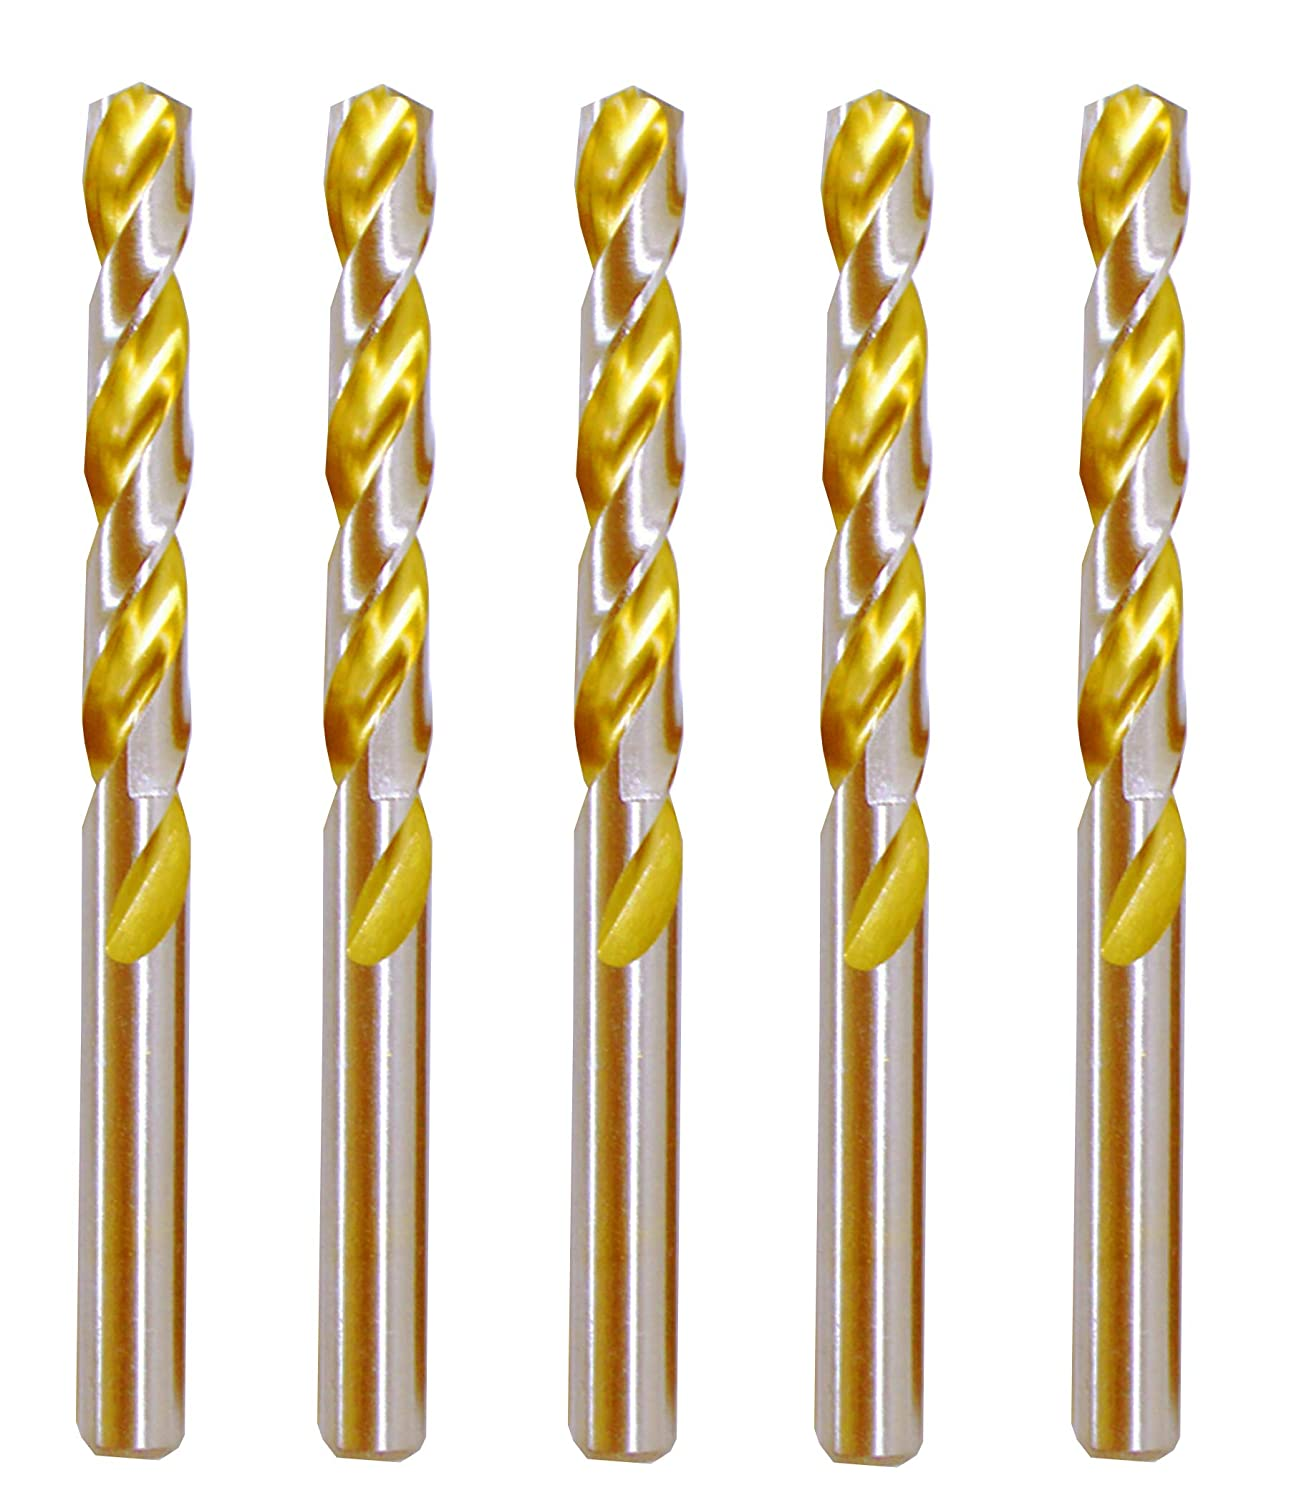 MAX-CRAFT HSS Drill Wholesale Bit Quality inspection 1 2 Length in.x 6